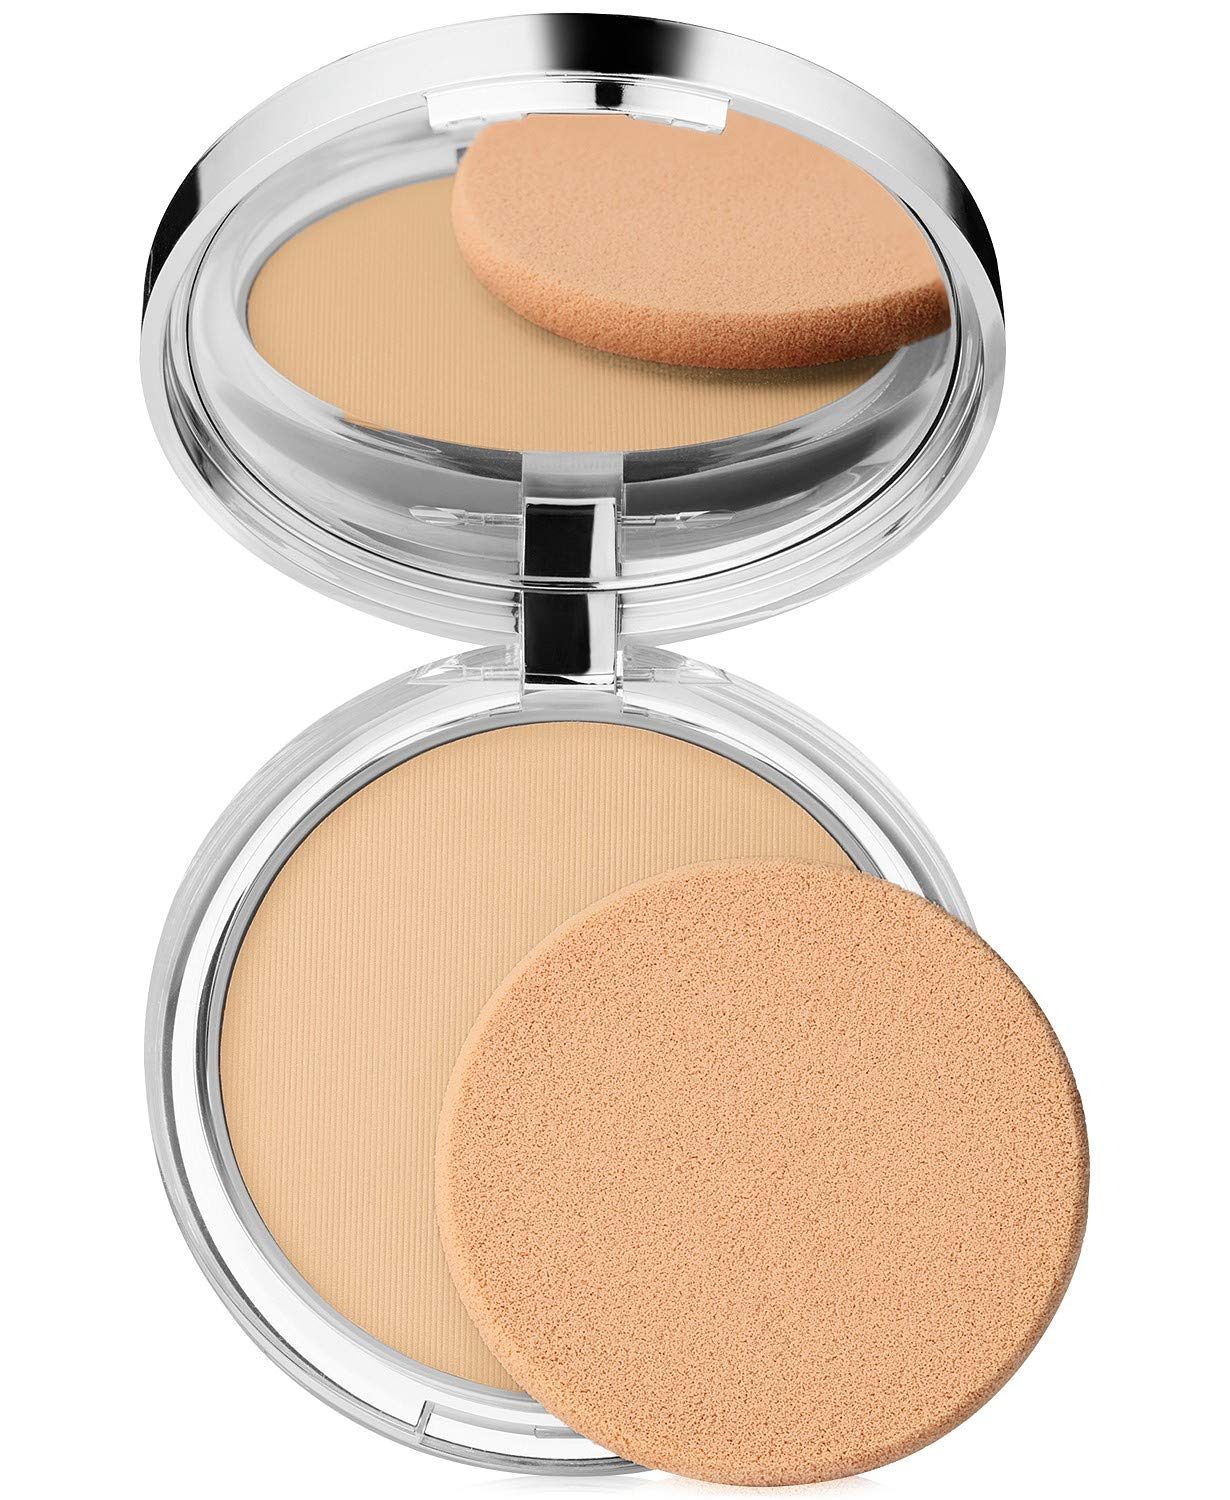 New! Clinique Stay-Matte Sheer Pressed Powder, 0.27 oz / 7.6 g, 101 Invisible Matte (All Skin Tones)